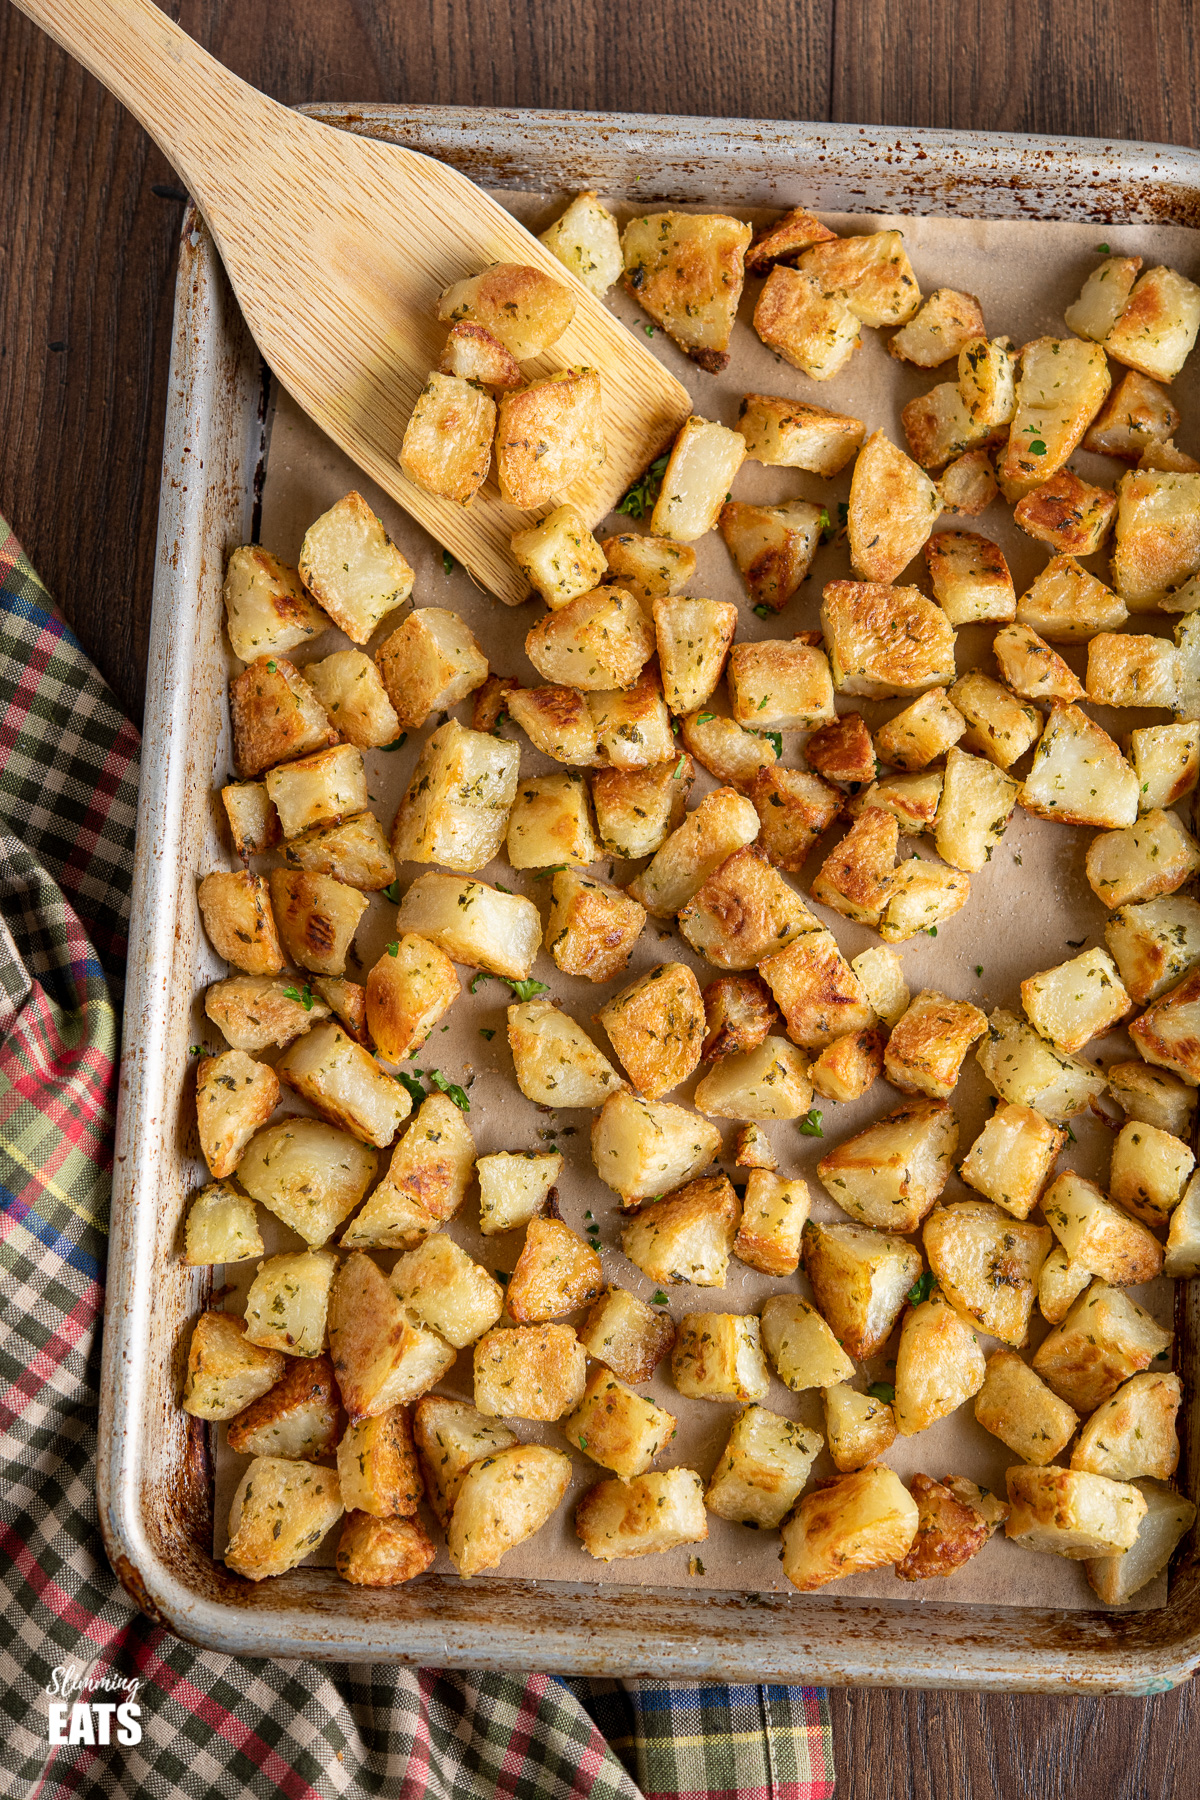 Garlic and Herb Roasted Potatoes on a parchment lined baking tray